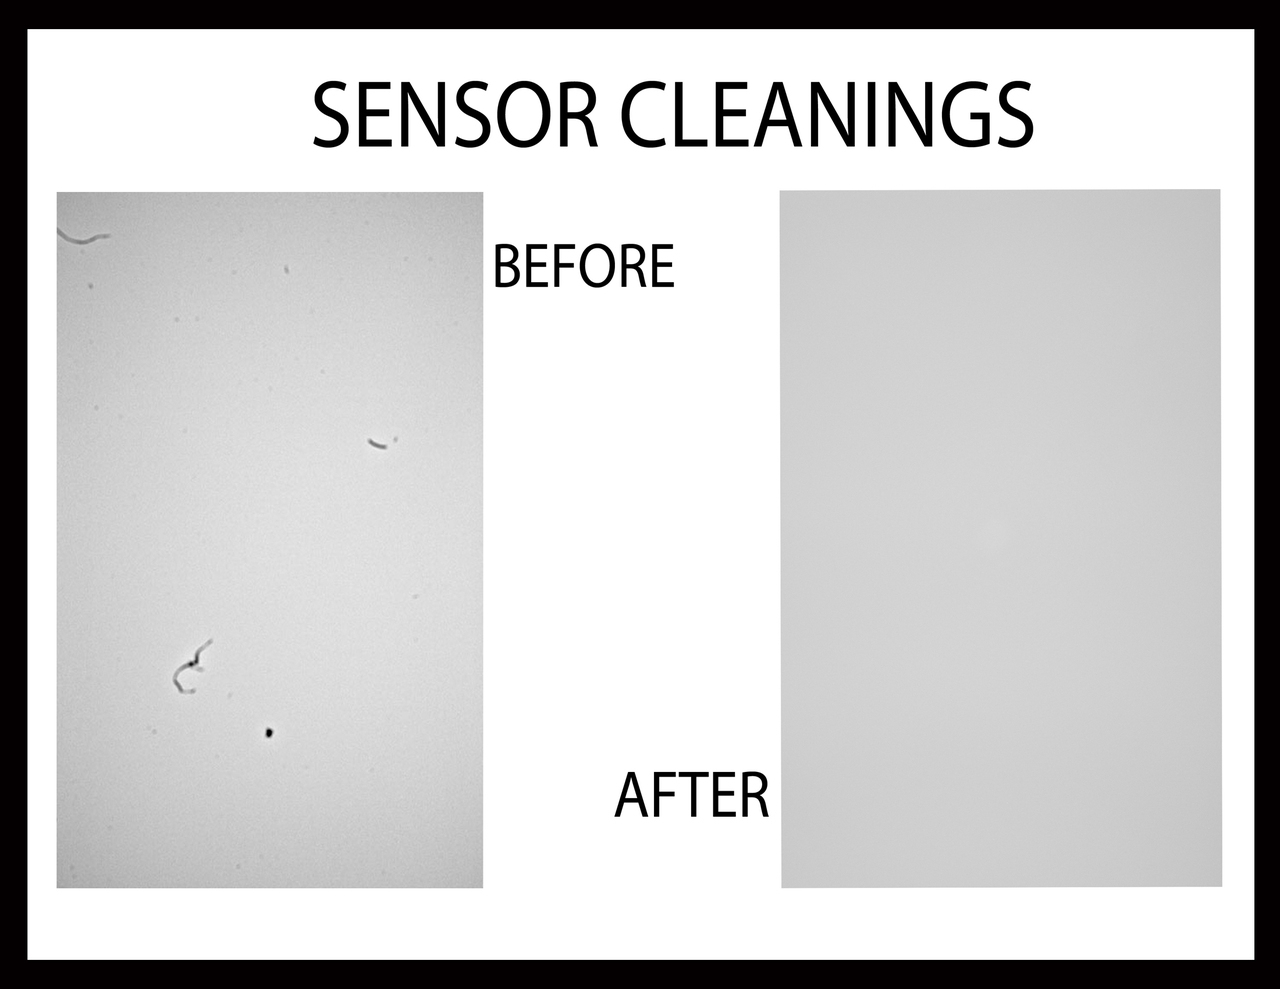 Getting Your Sensor Cleaned - Tell them Carlos Sent You!